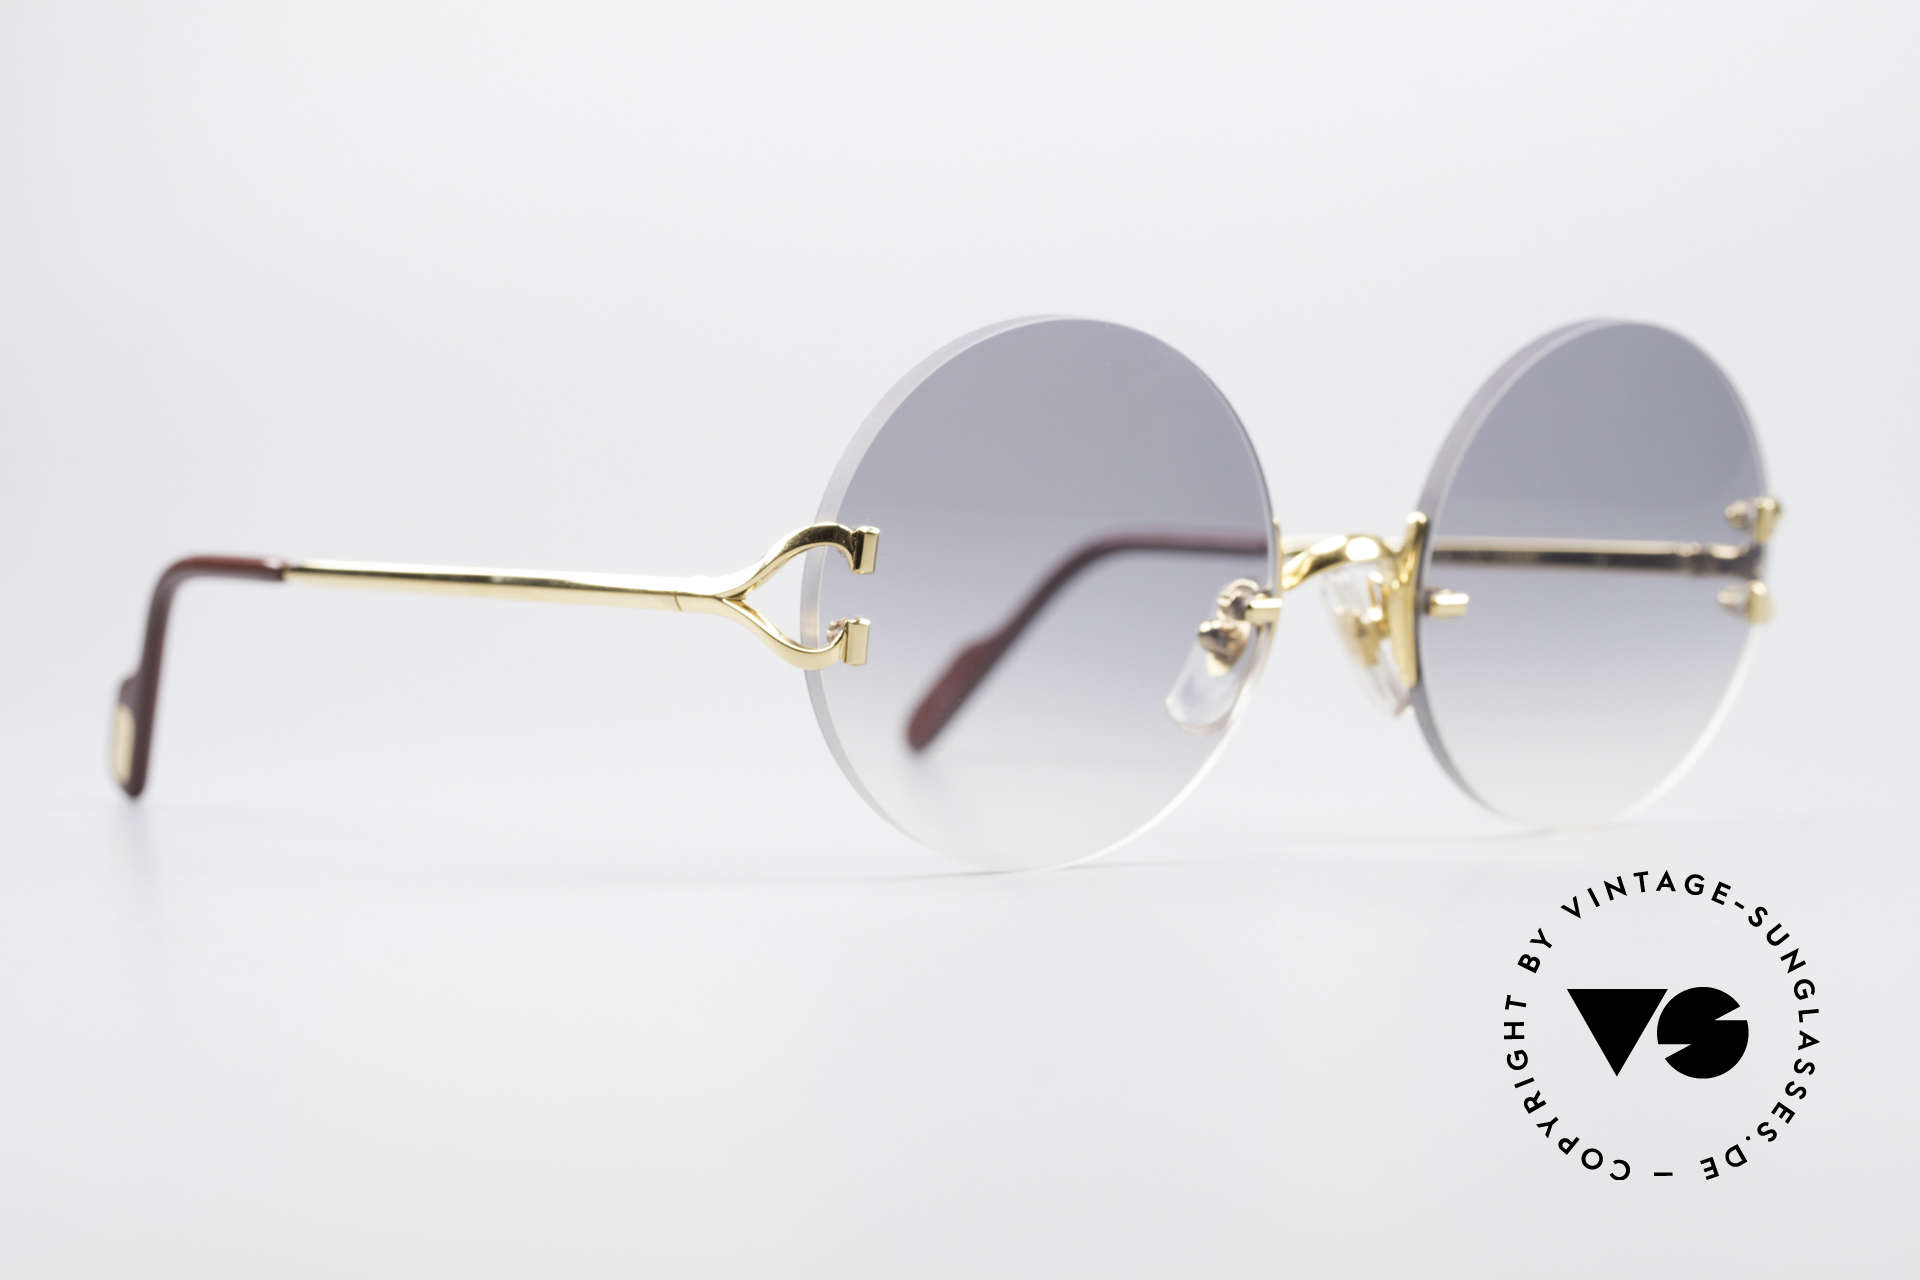 Cartier Madison Round Rimless Sunglasses, unworn with new sun lenses & CARTIER leather case, Made for Men and Women